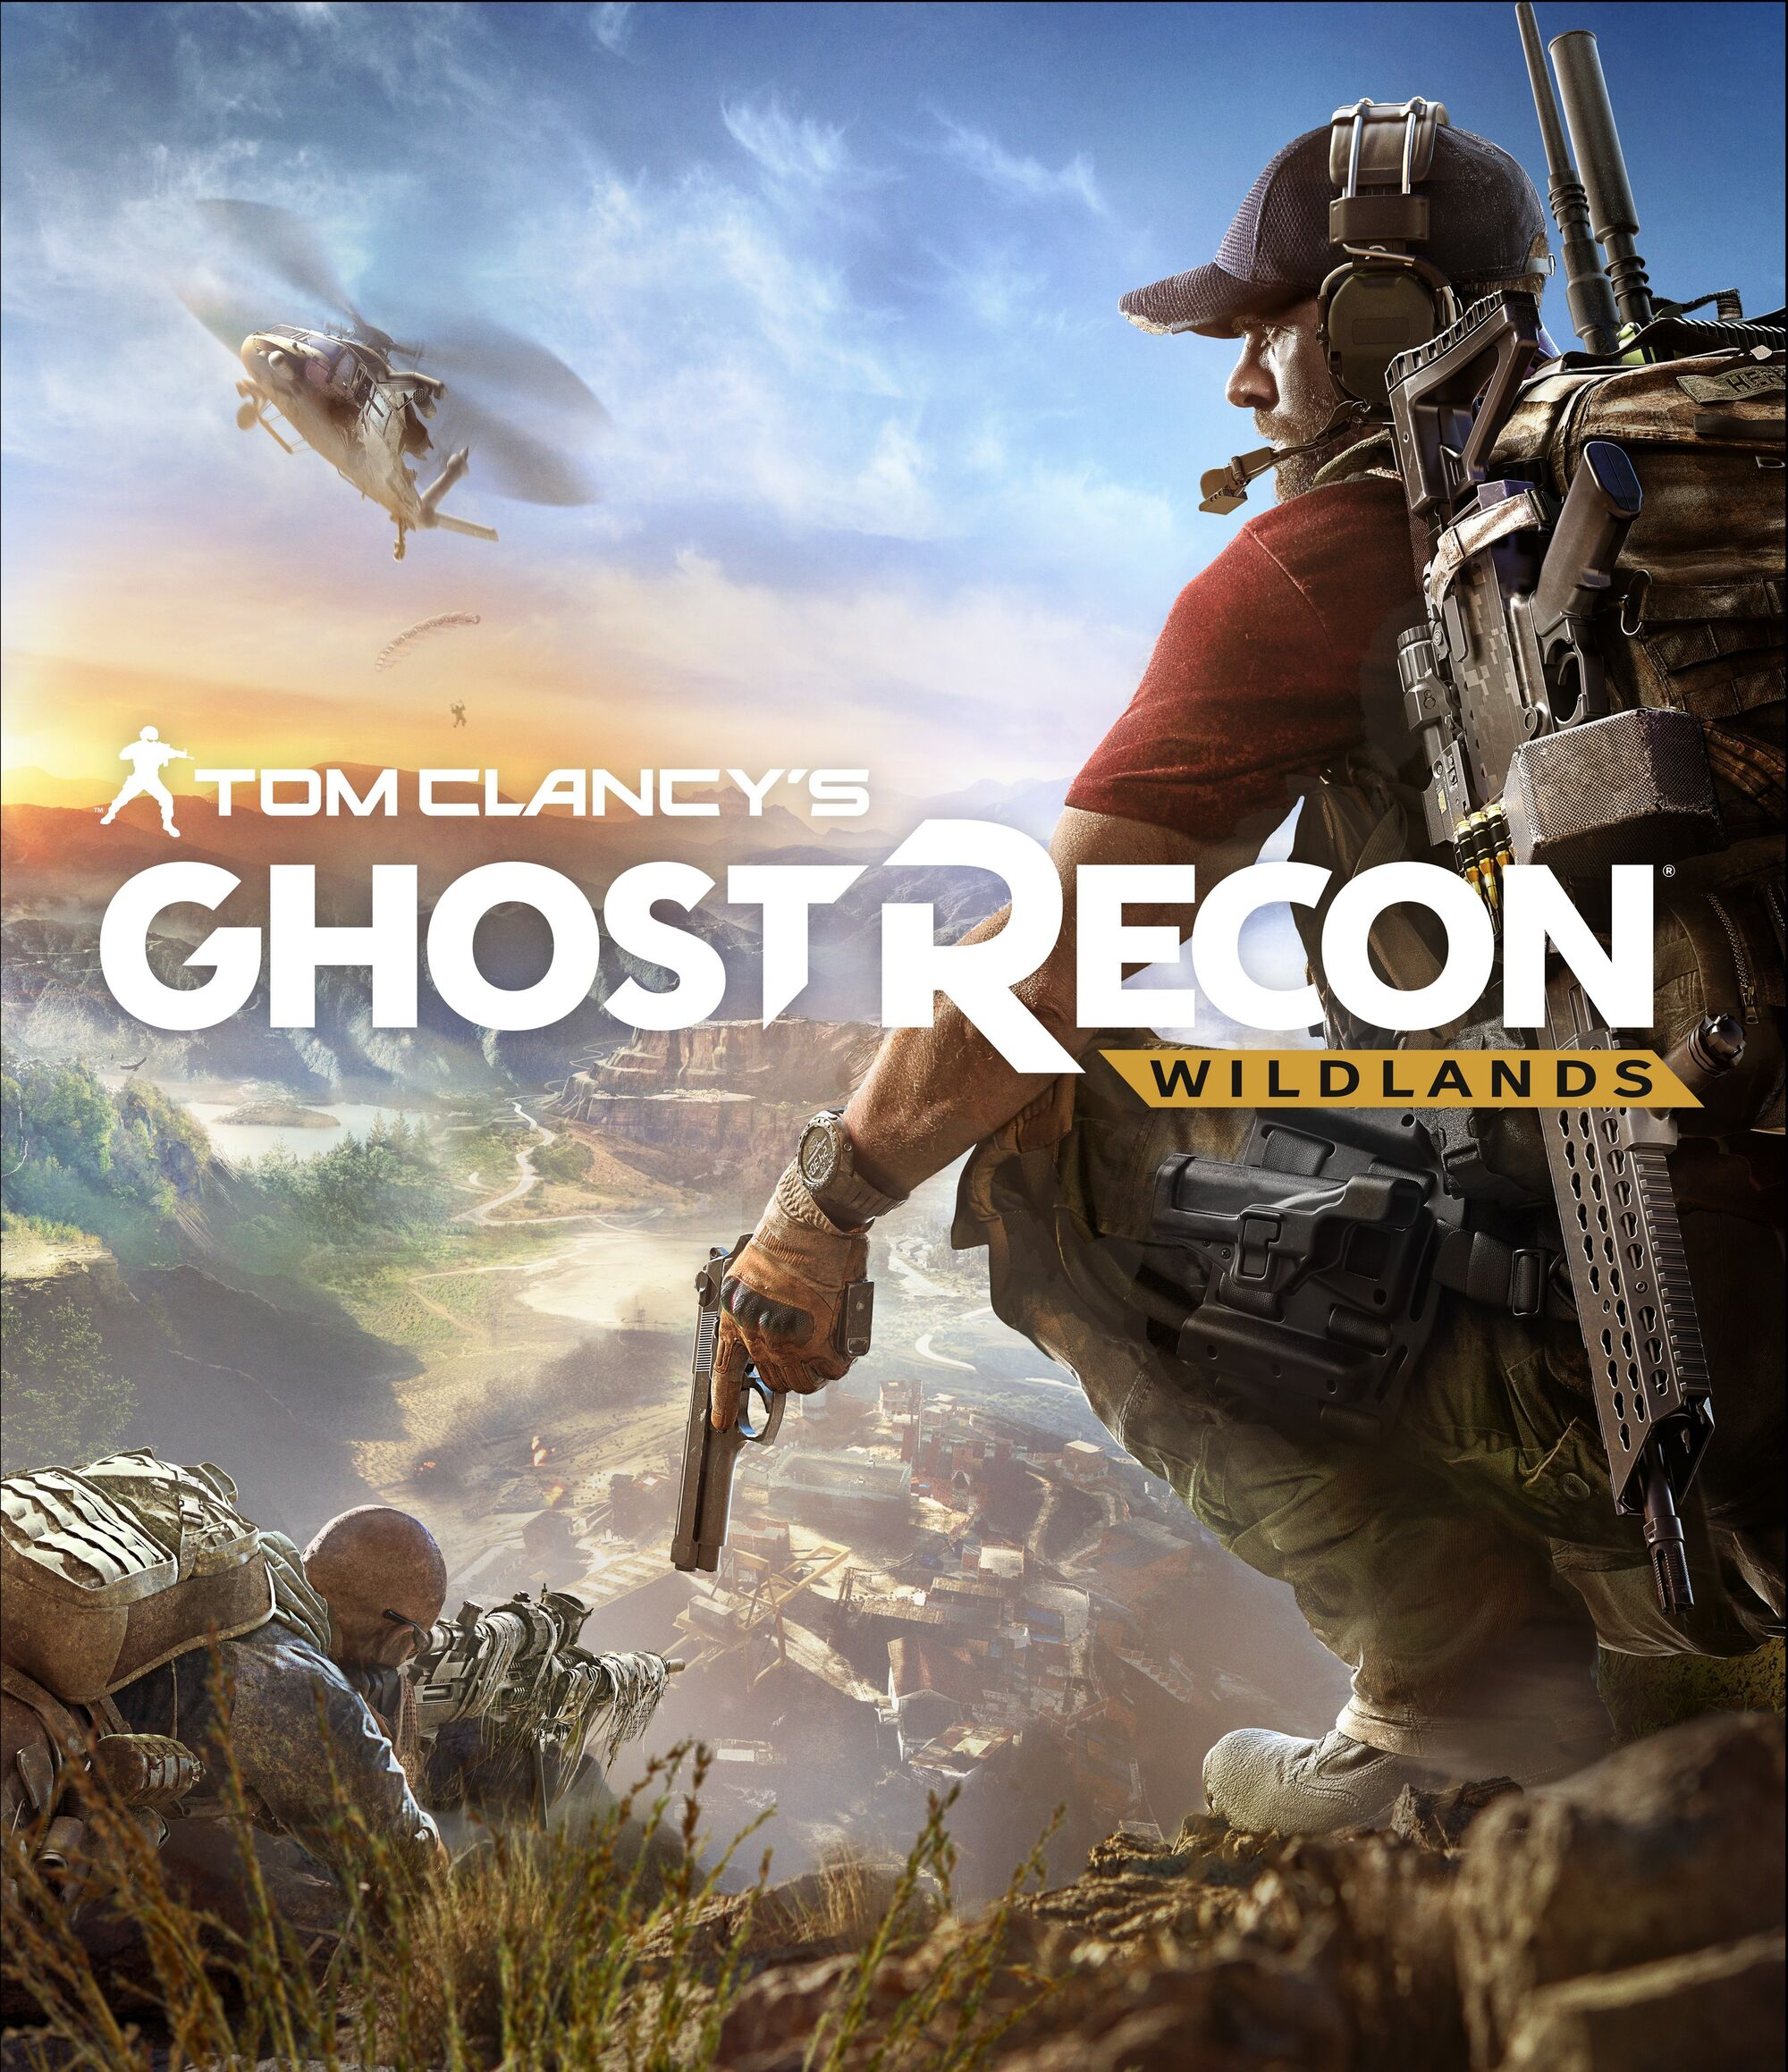 Tom Clancy's Ghost Recon Wildlands | Ghost Recon Wiki | FANDOM